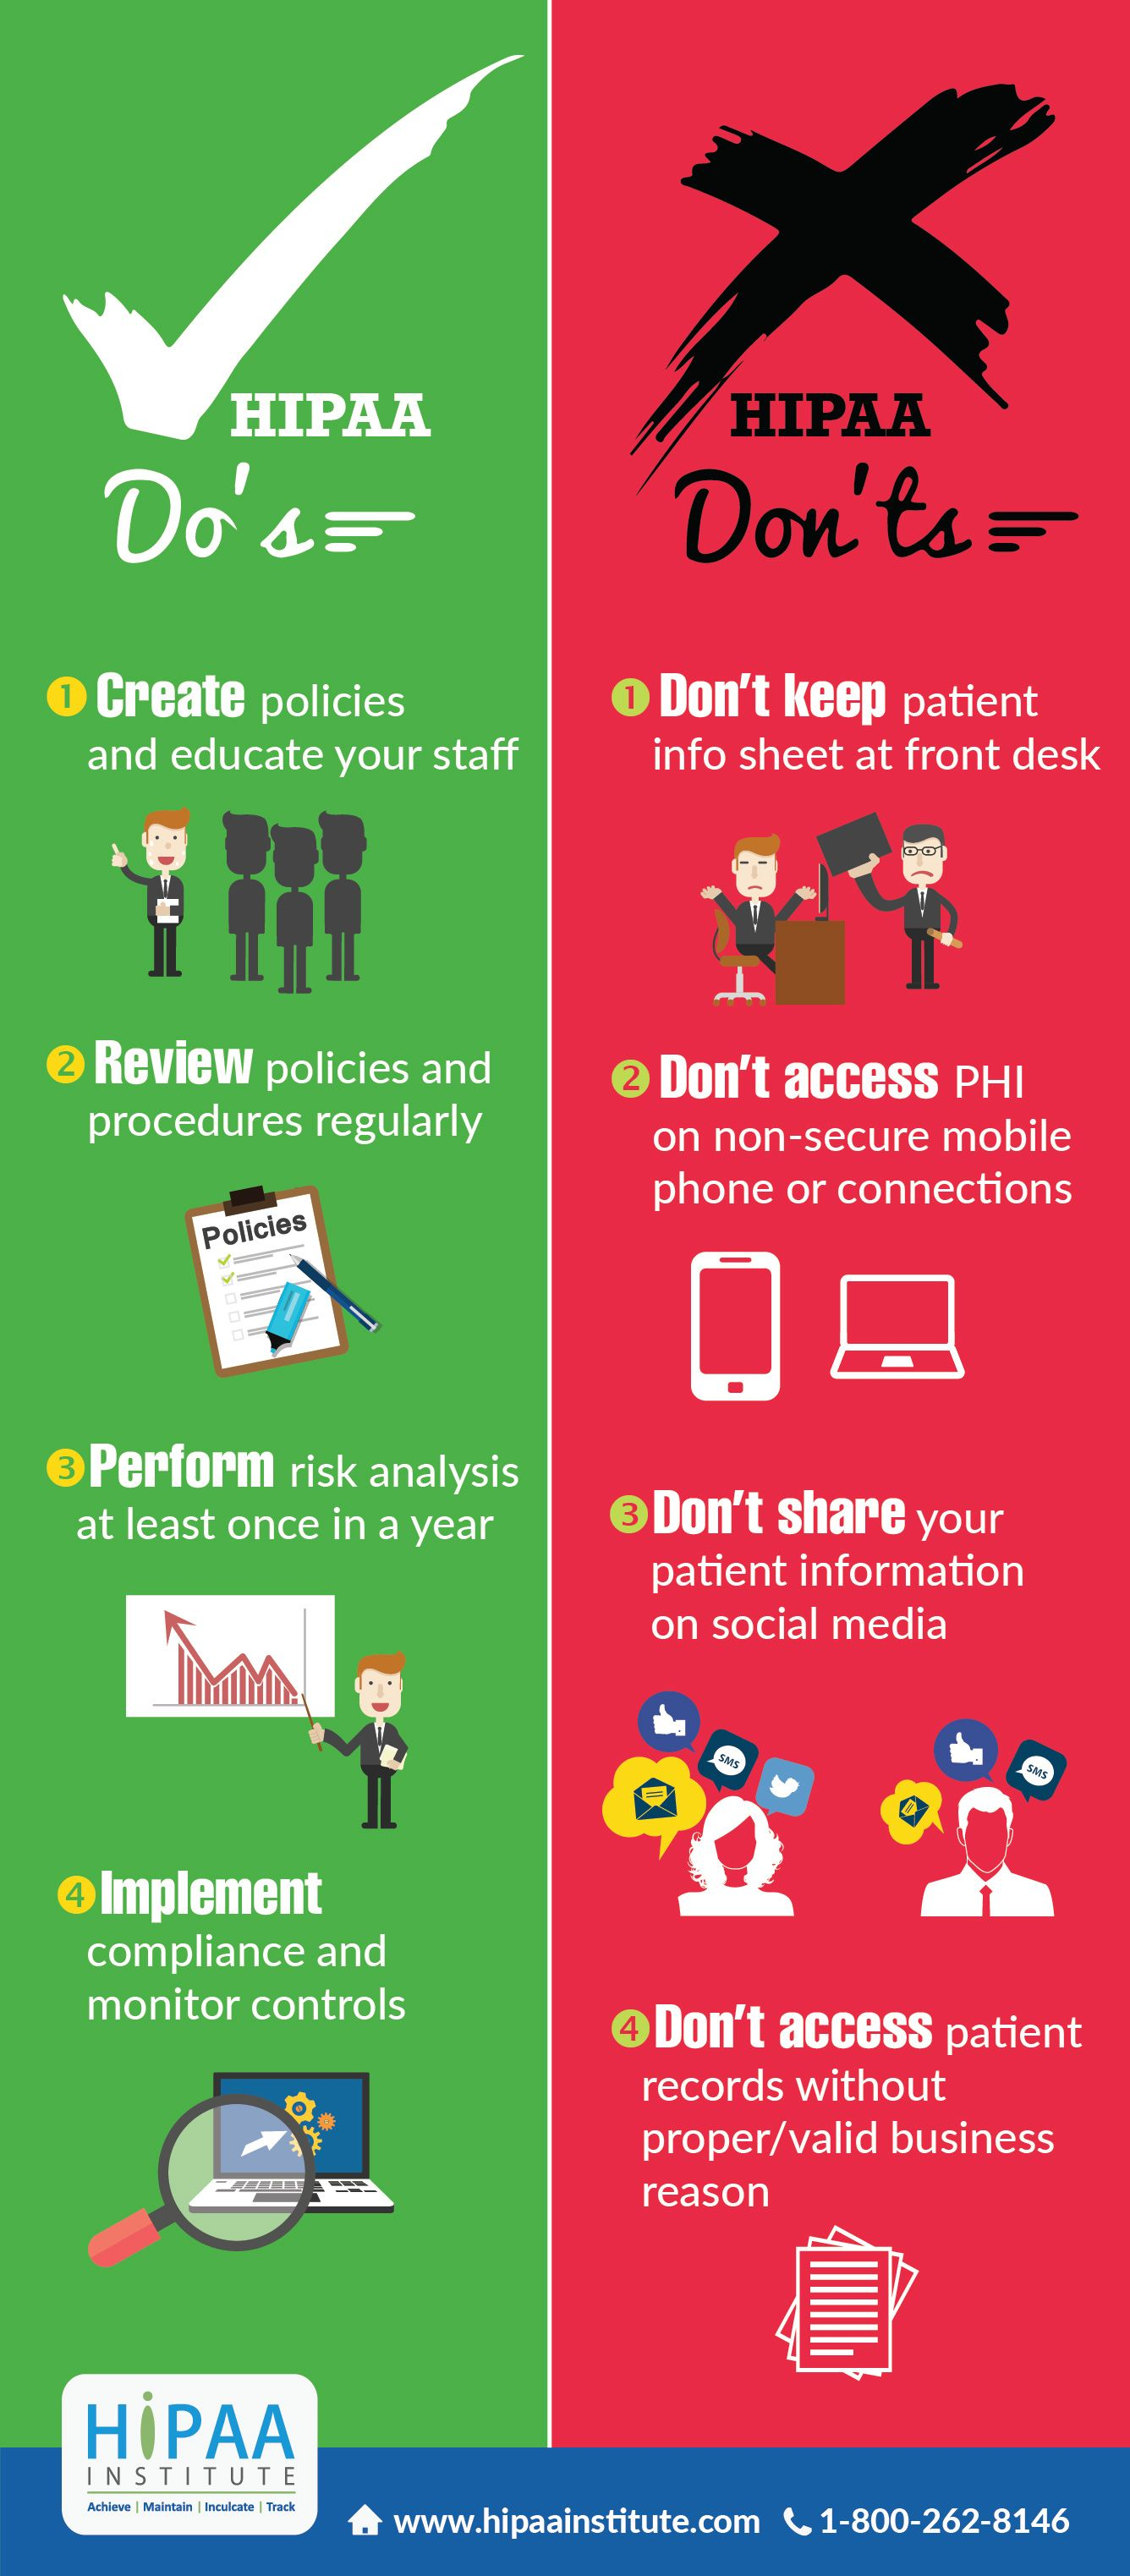 Discover Ideas About Medical Billing And Pinterestcom